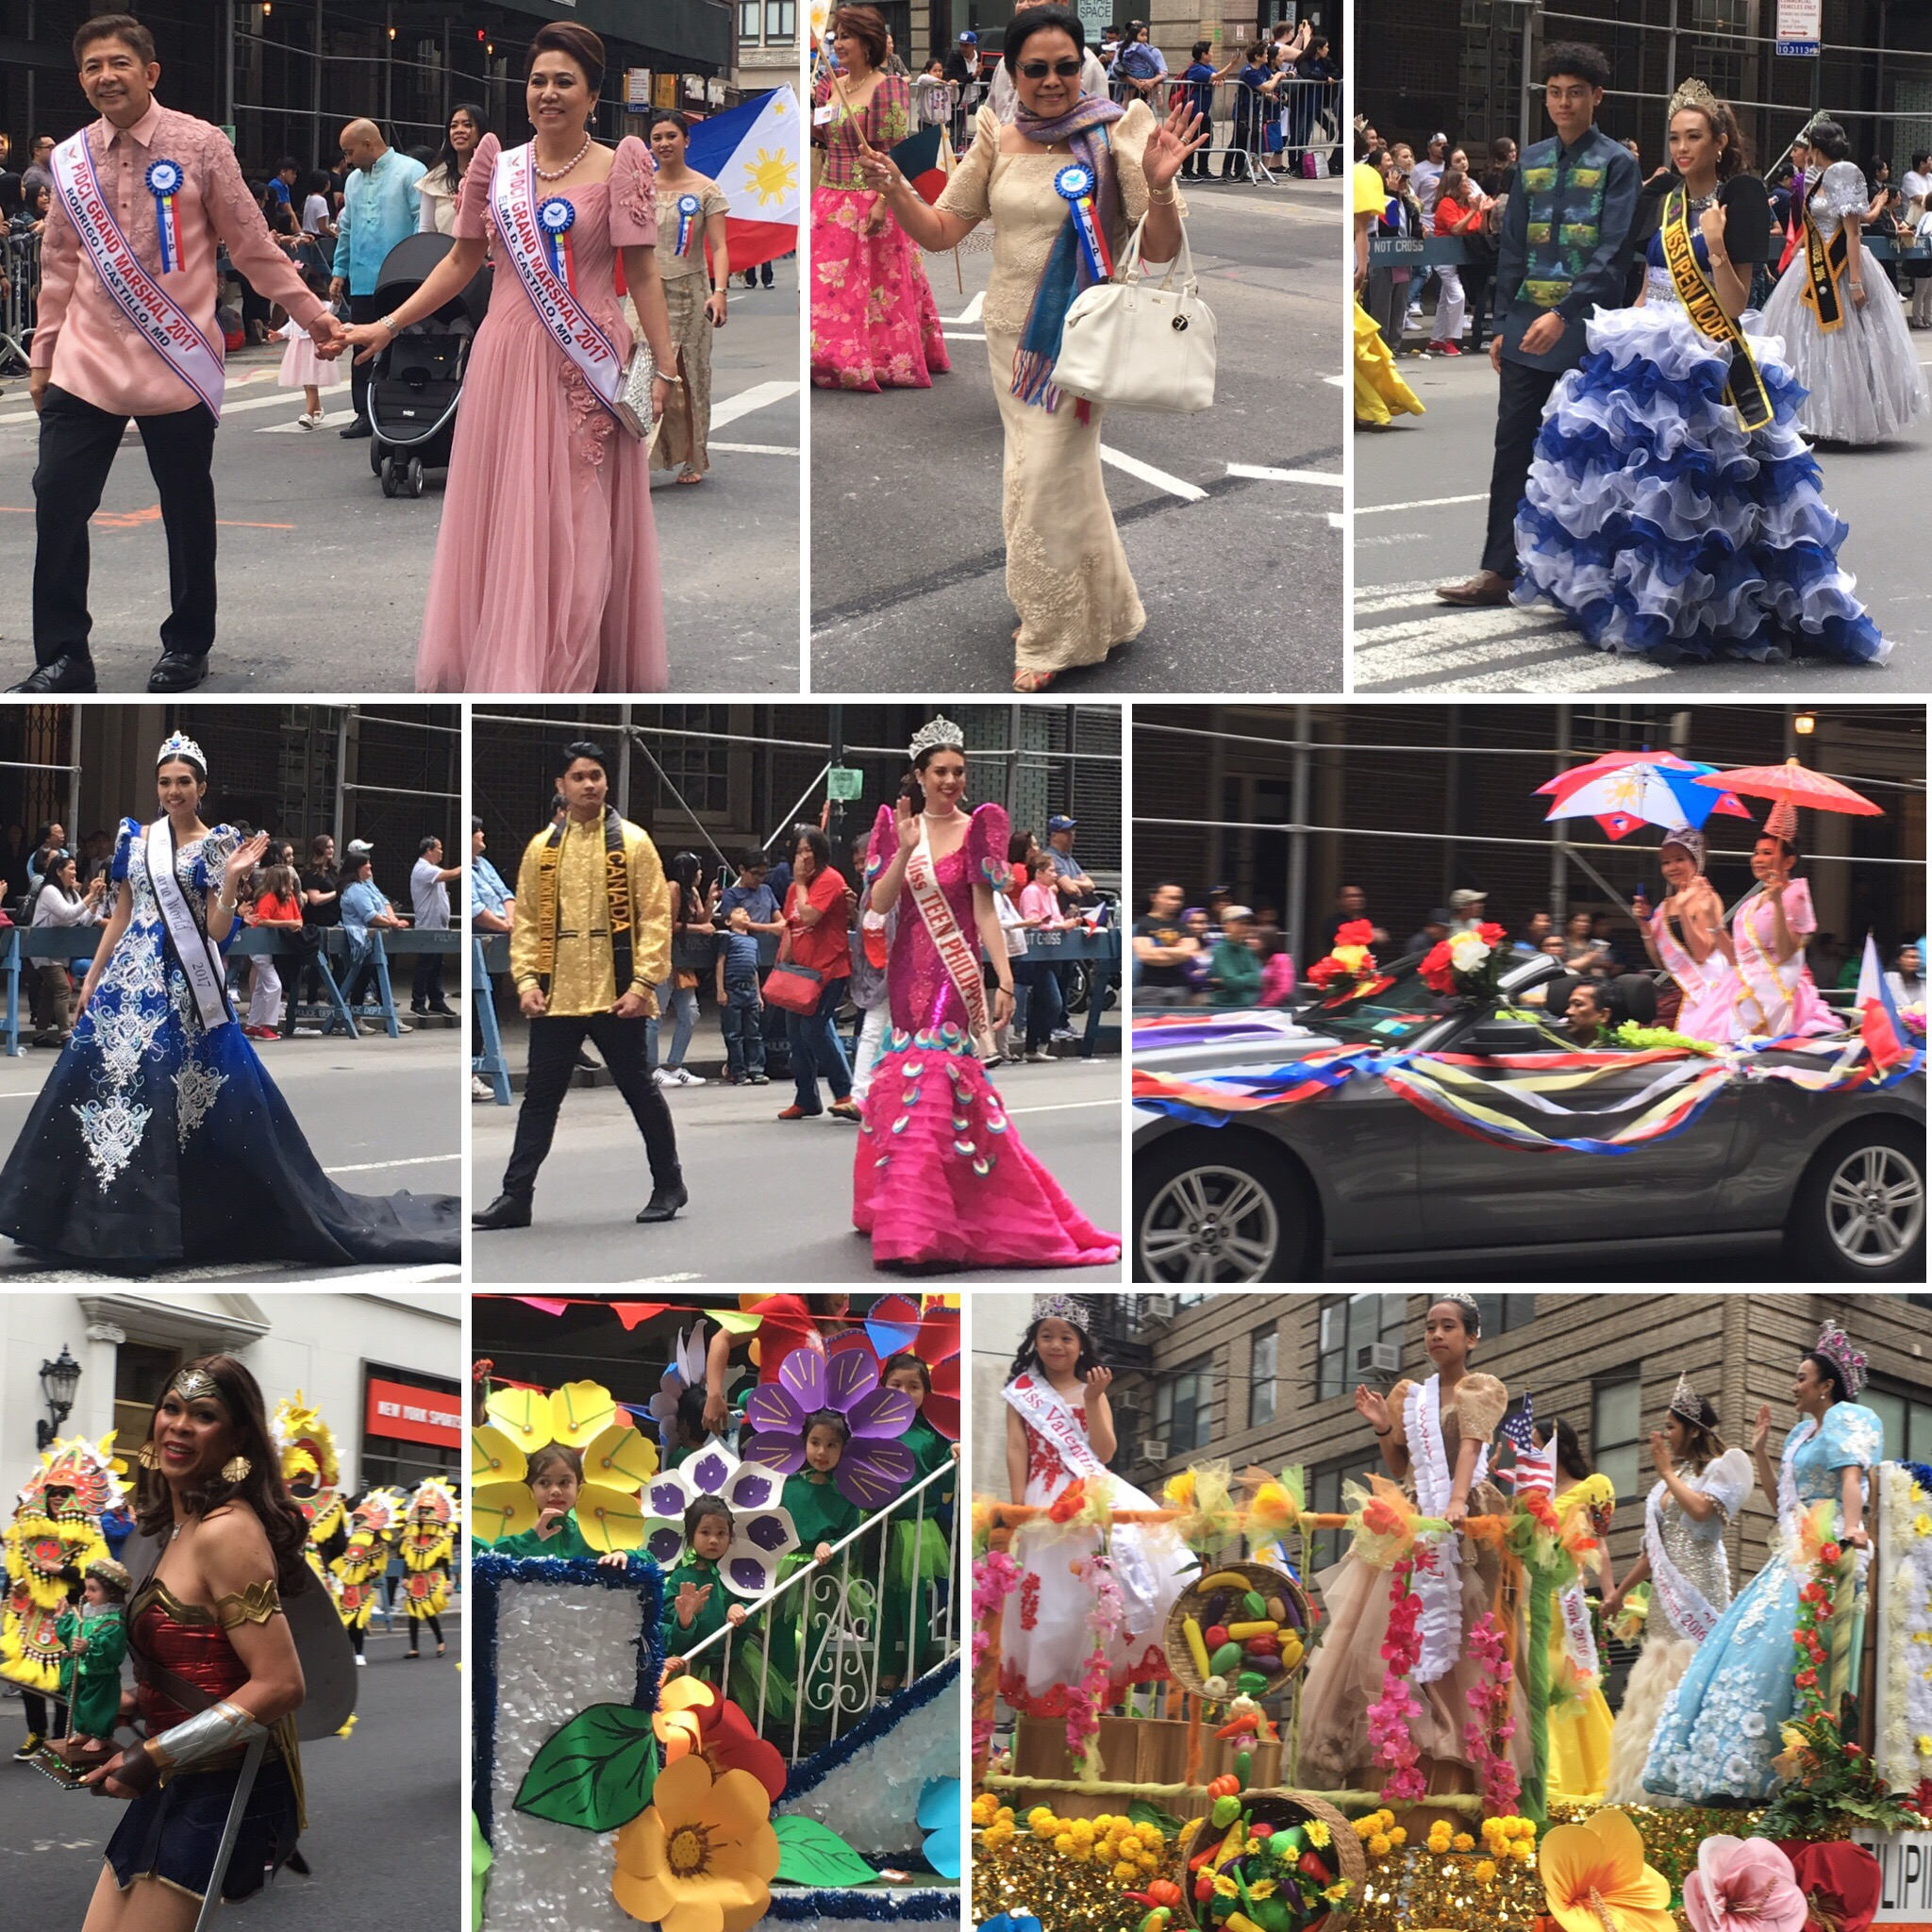 Greetings and mabuhay design and style report greetings and mabuhay from the 2017 philippine independence day parade new york city culture food colors good times and great people at the parade kristyandbryce Gallery